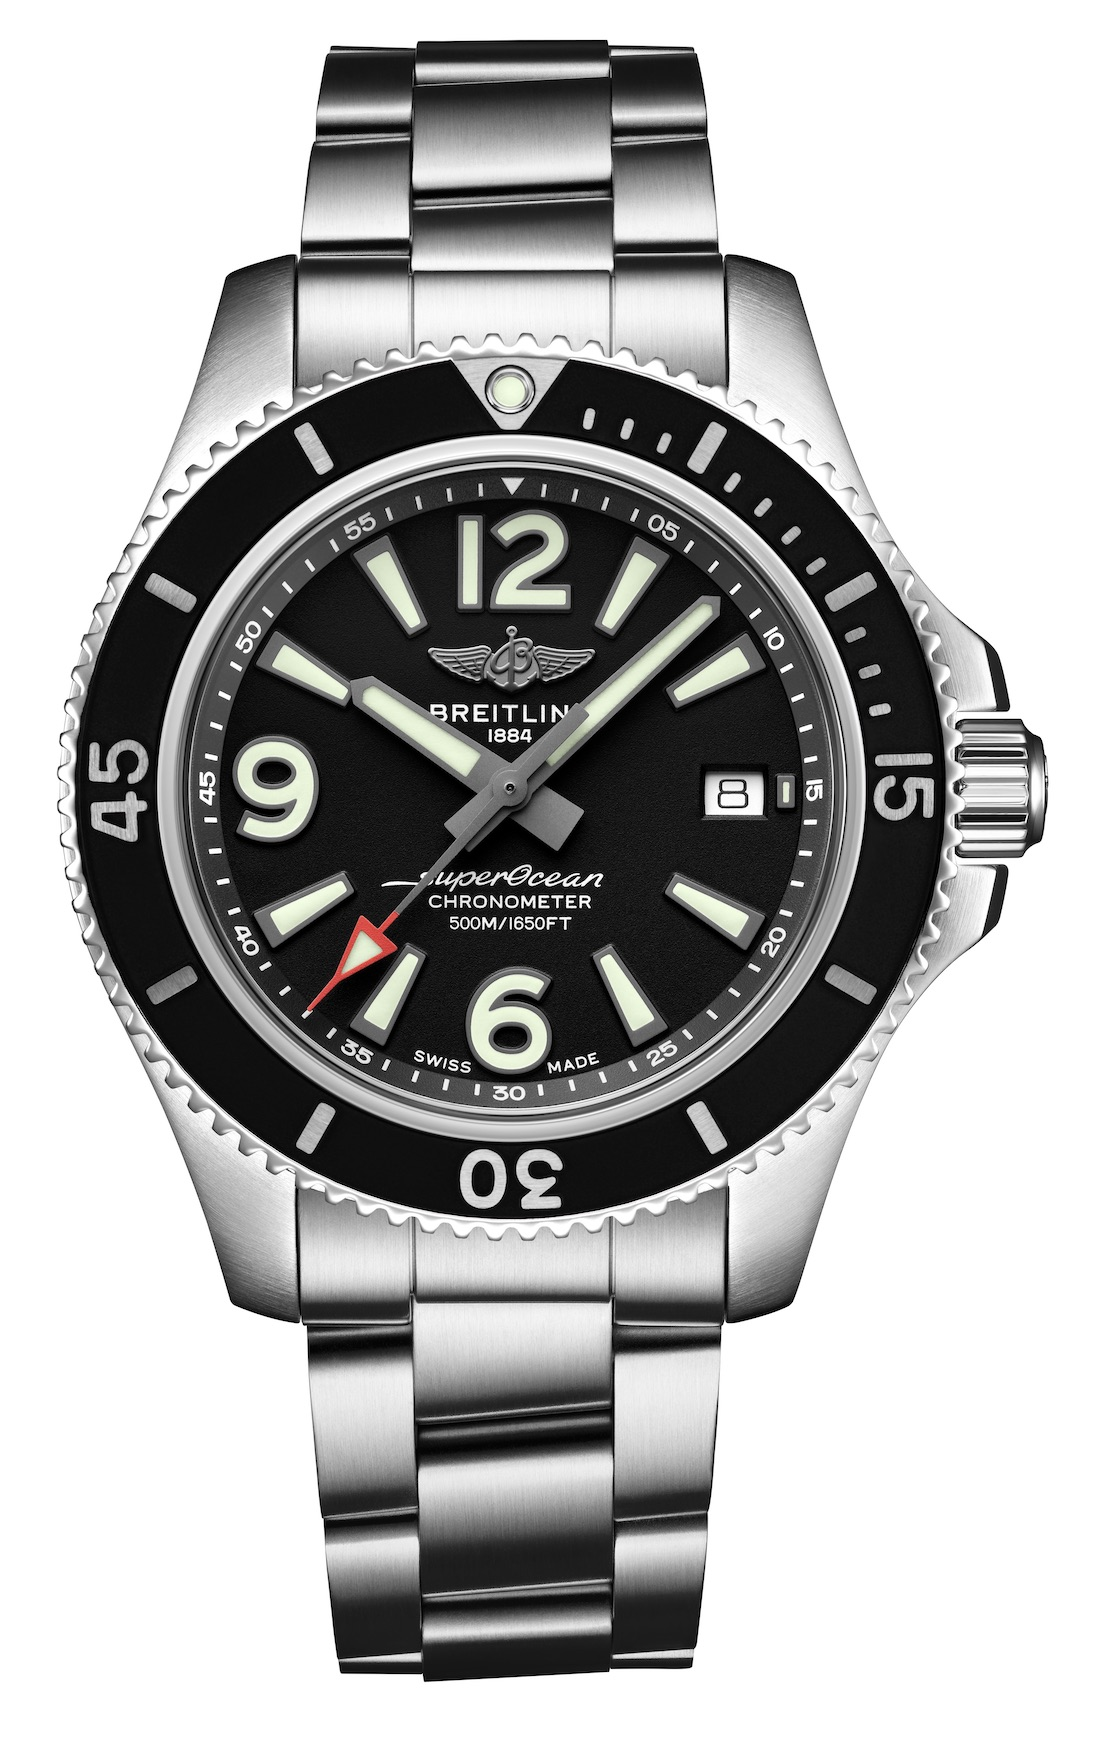 15_Superocean 42 with black dial and stainless-steel bracelet_22855_19-03-19.jpeg